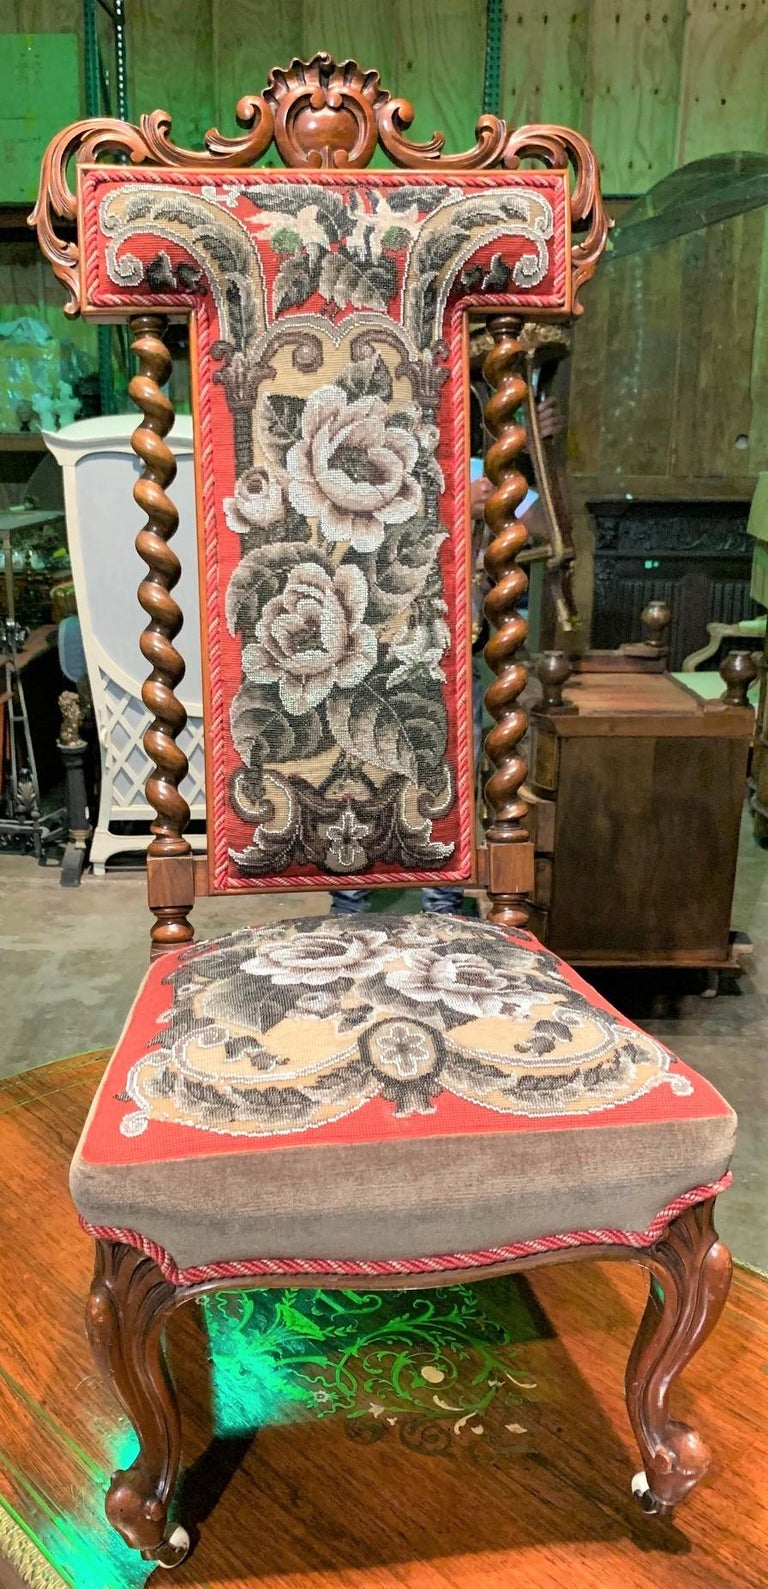 Excellent quality and scarce 19th century English Victorian mahogany ladies slipper chair upholstered in a fine needlepoint fabric. The crested back superbly carved in a foliate motif and flanked by barley twist columns. Having splayed back legs and